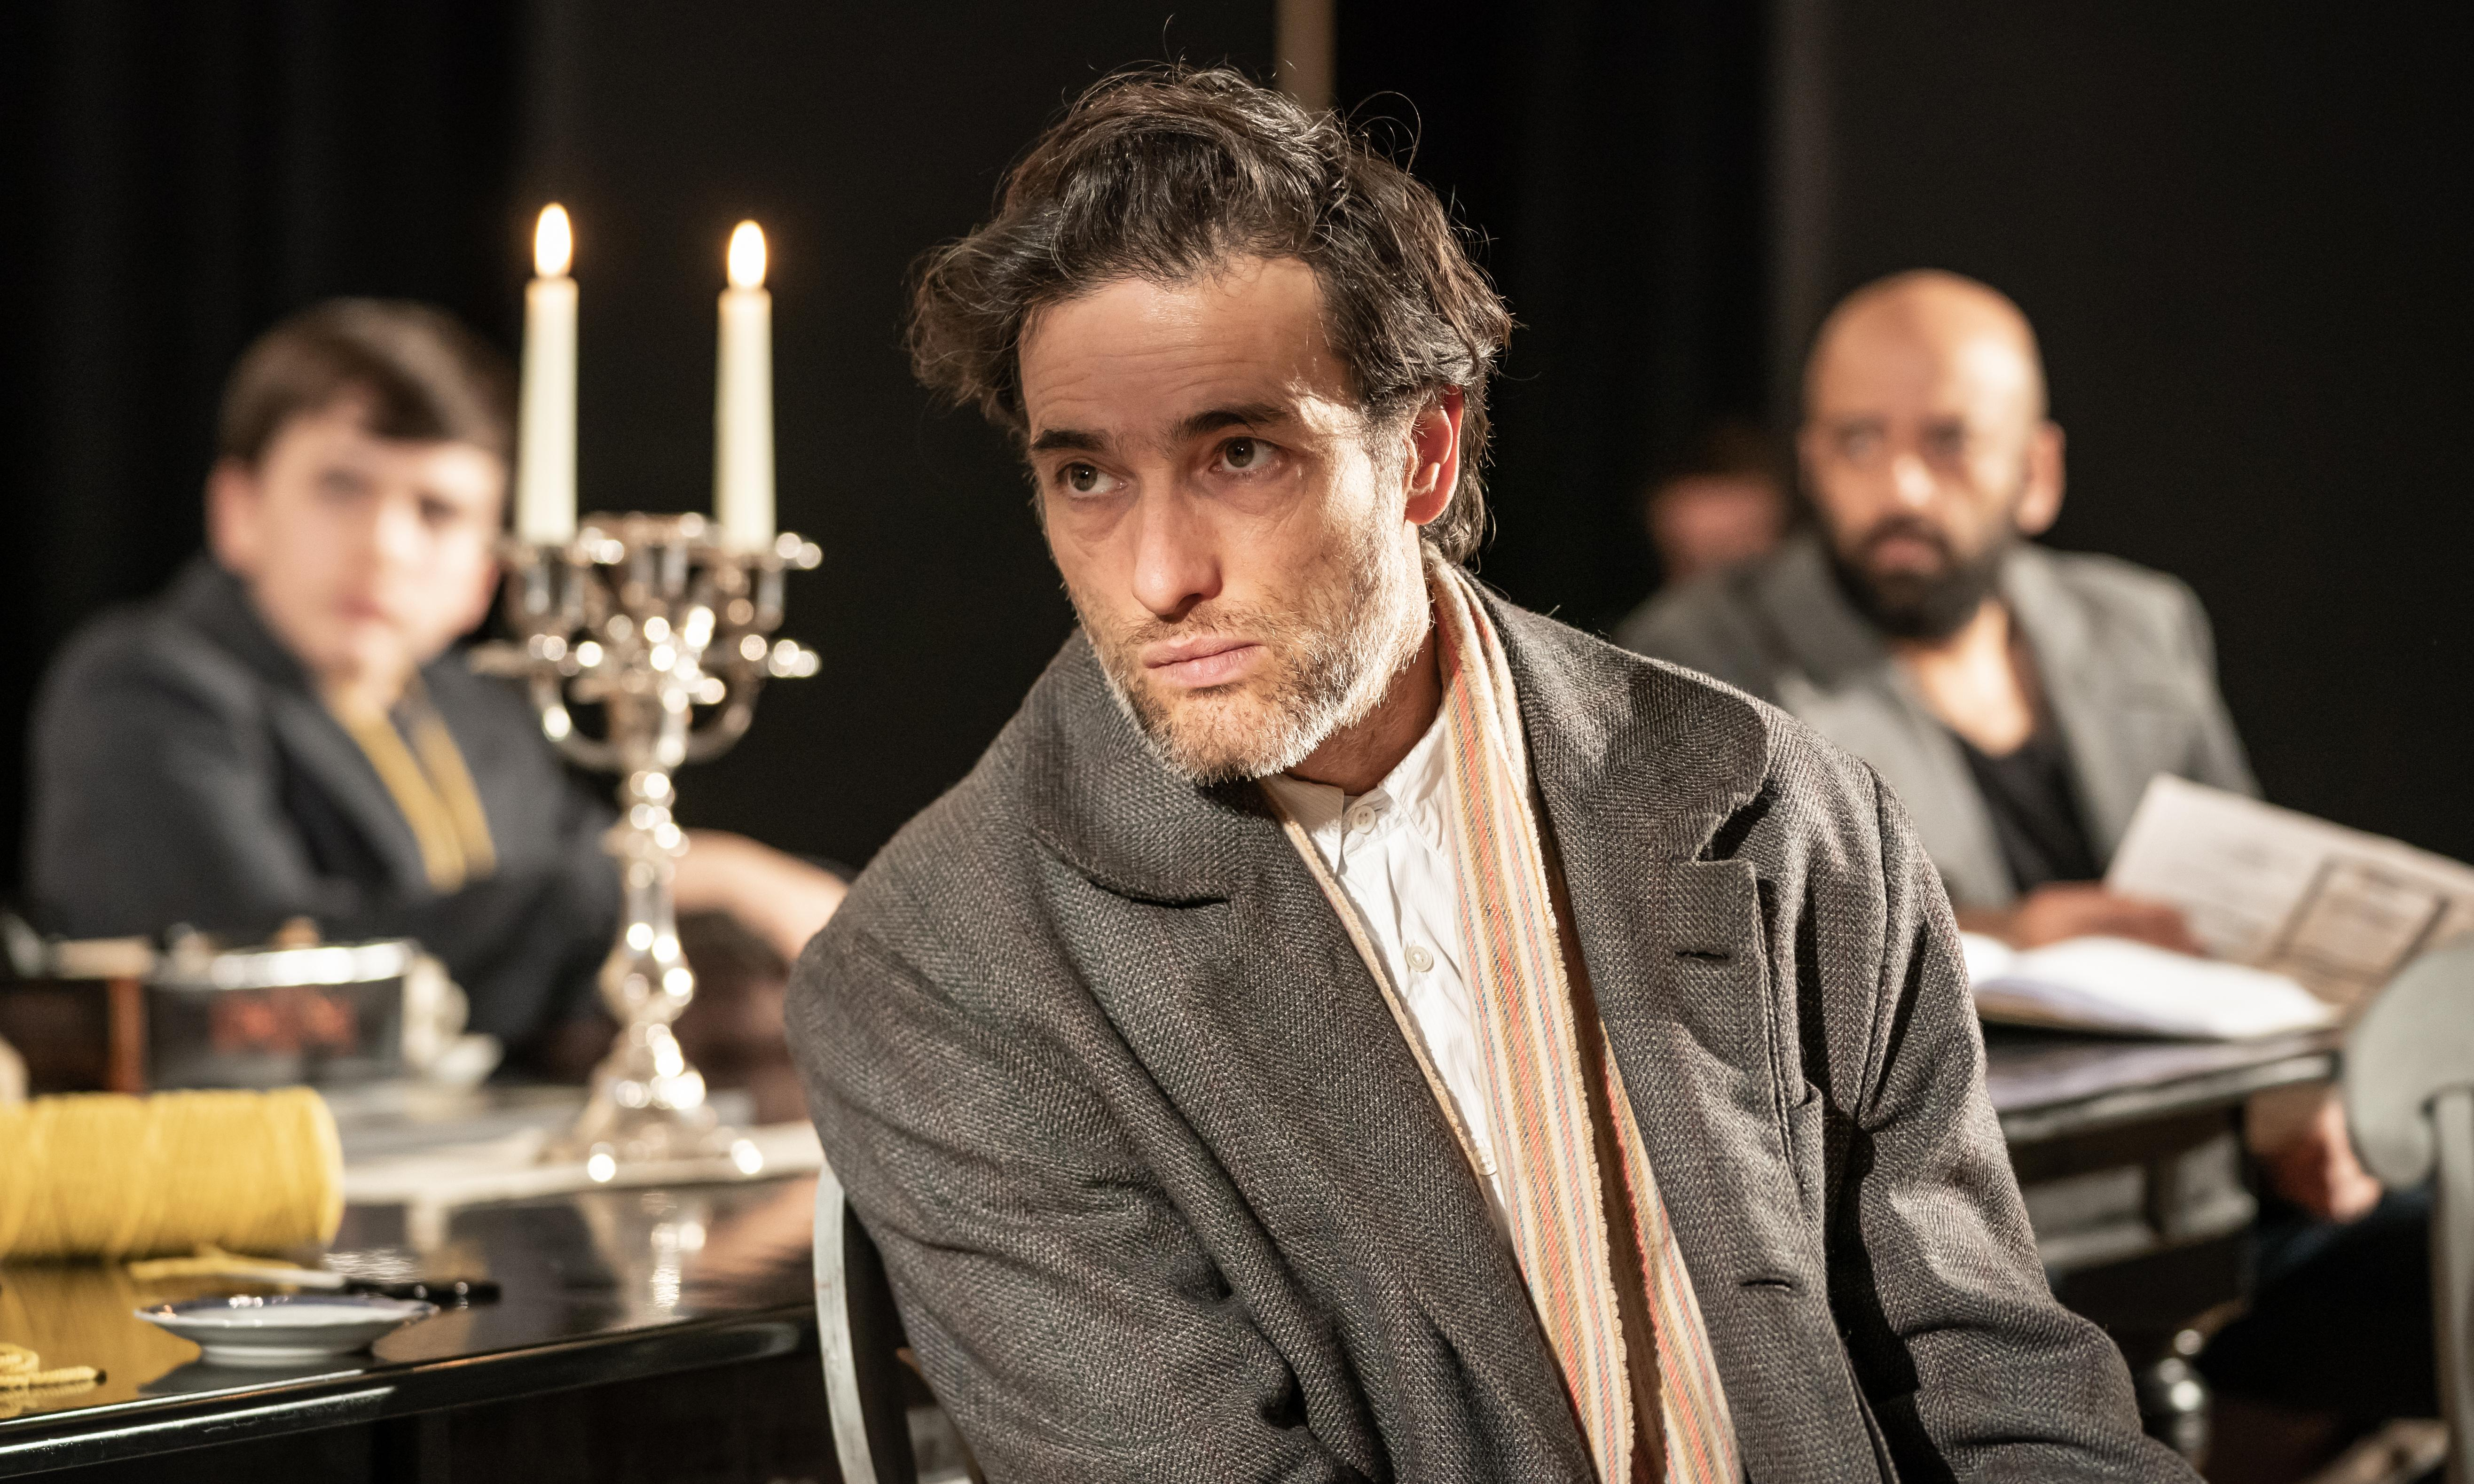 'My surname was an albatross': Ed Stoppard on starring in his dad's new play